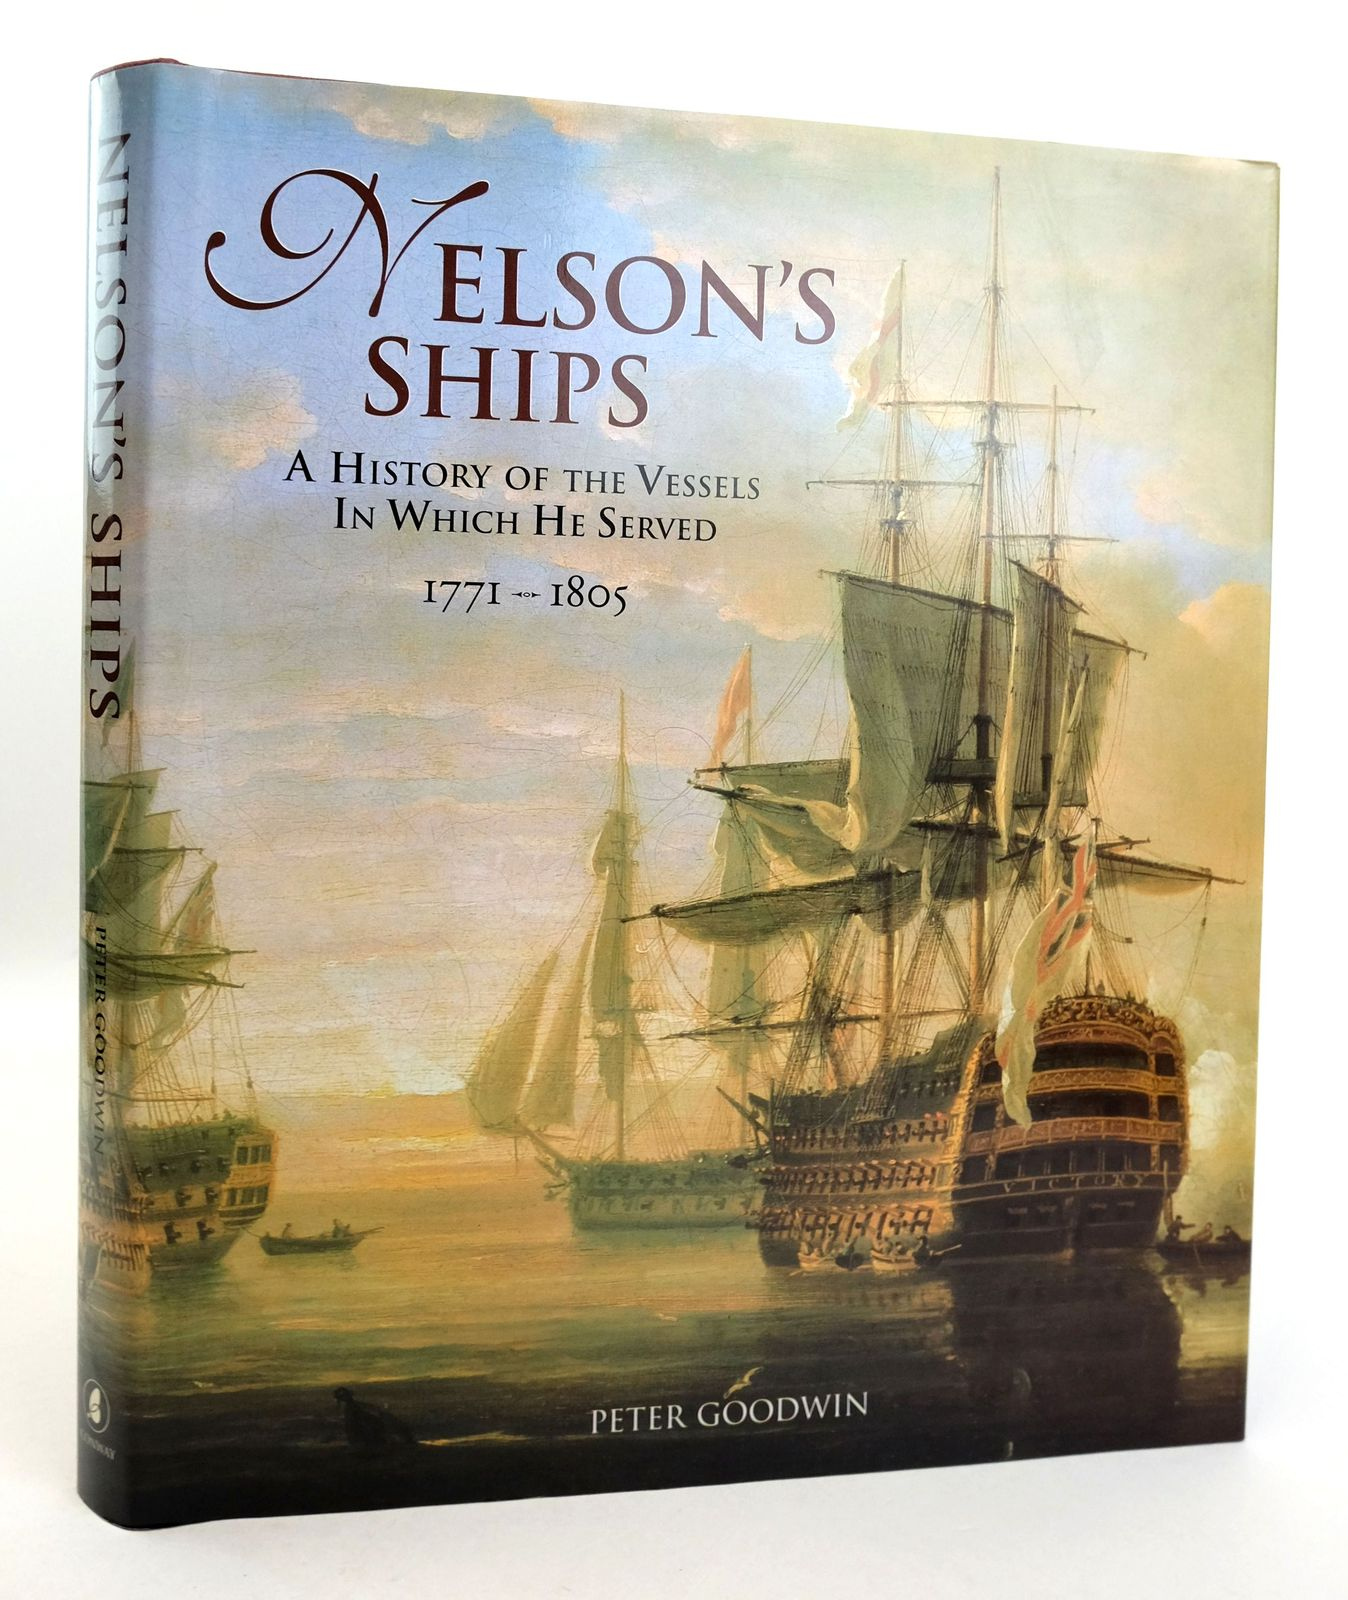 Photo of NELSON'S SHIPS: A HISTORY OF THE VESSELS IN WHICH HE SERVED 1771 - 1805- Stock Number: 1819503